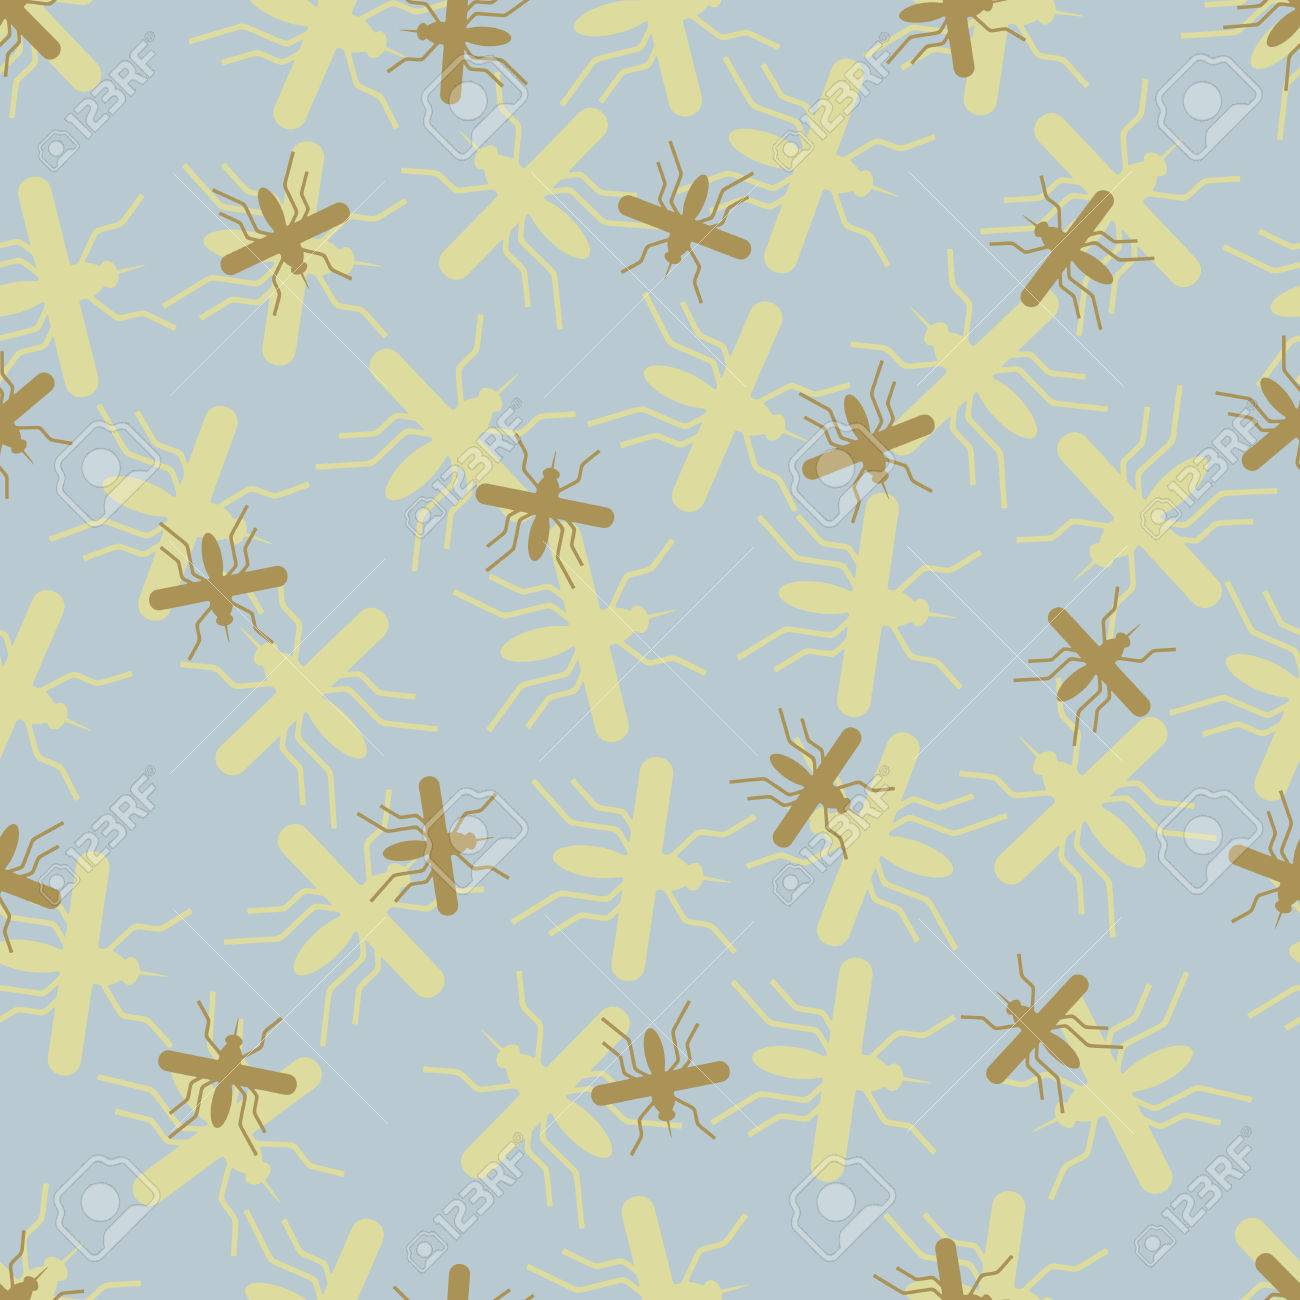 seamless background: mosquito. Vector Illustration Design Pattern Stock Vector - 25625208